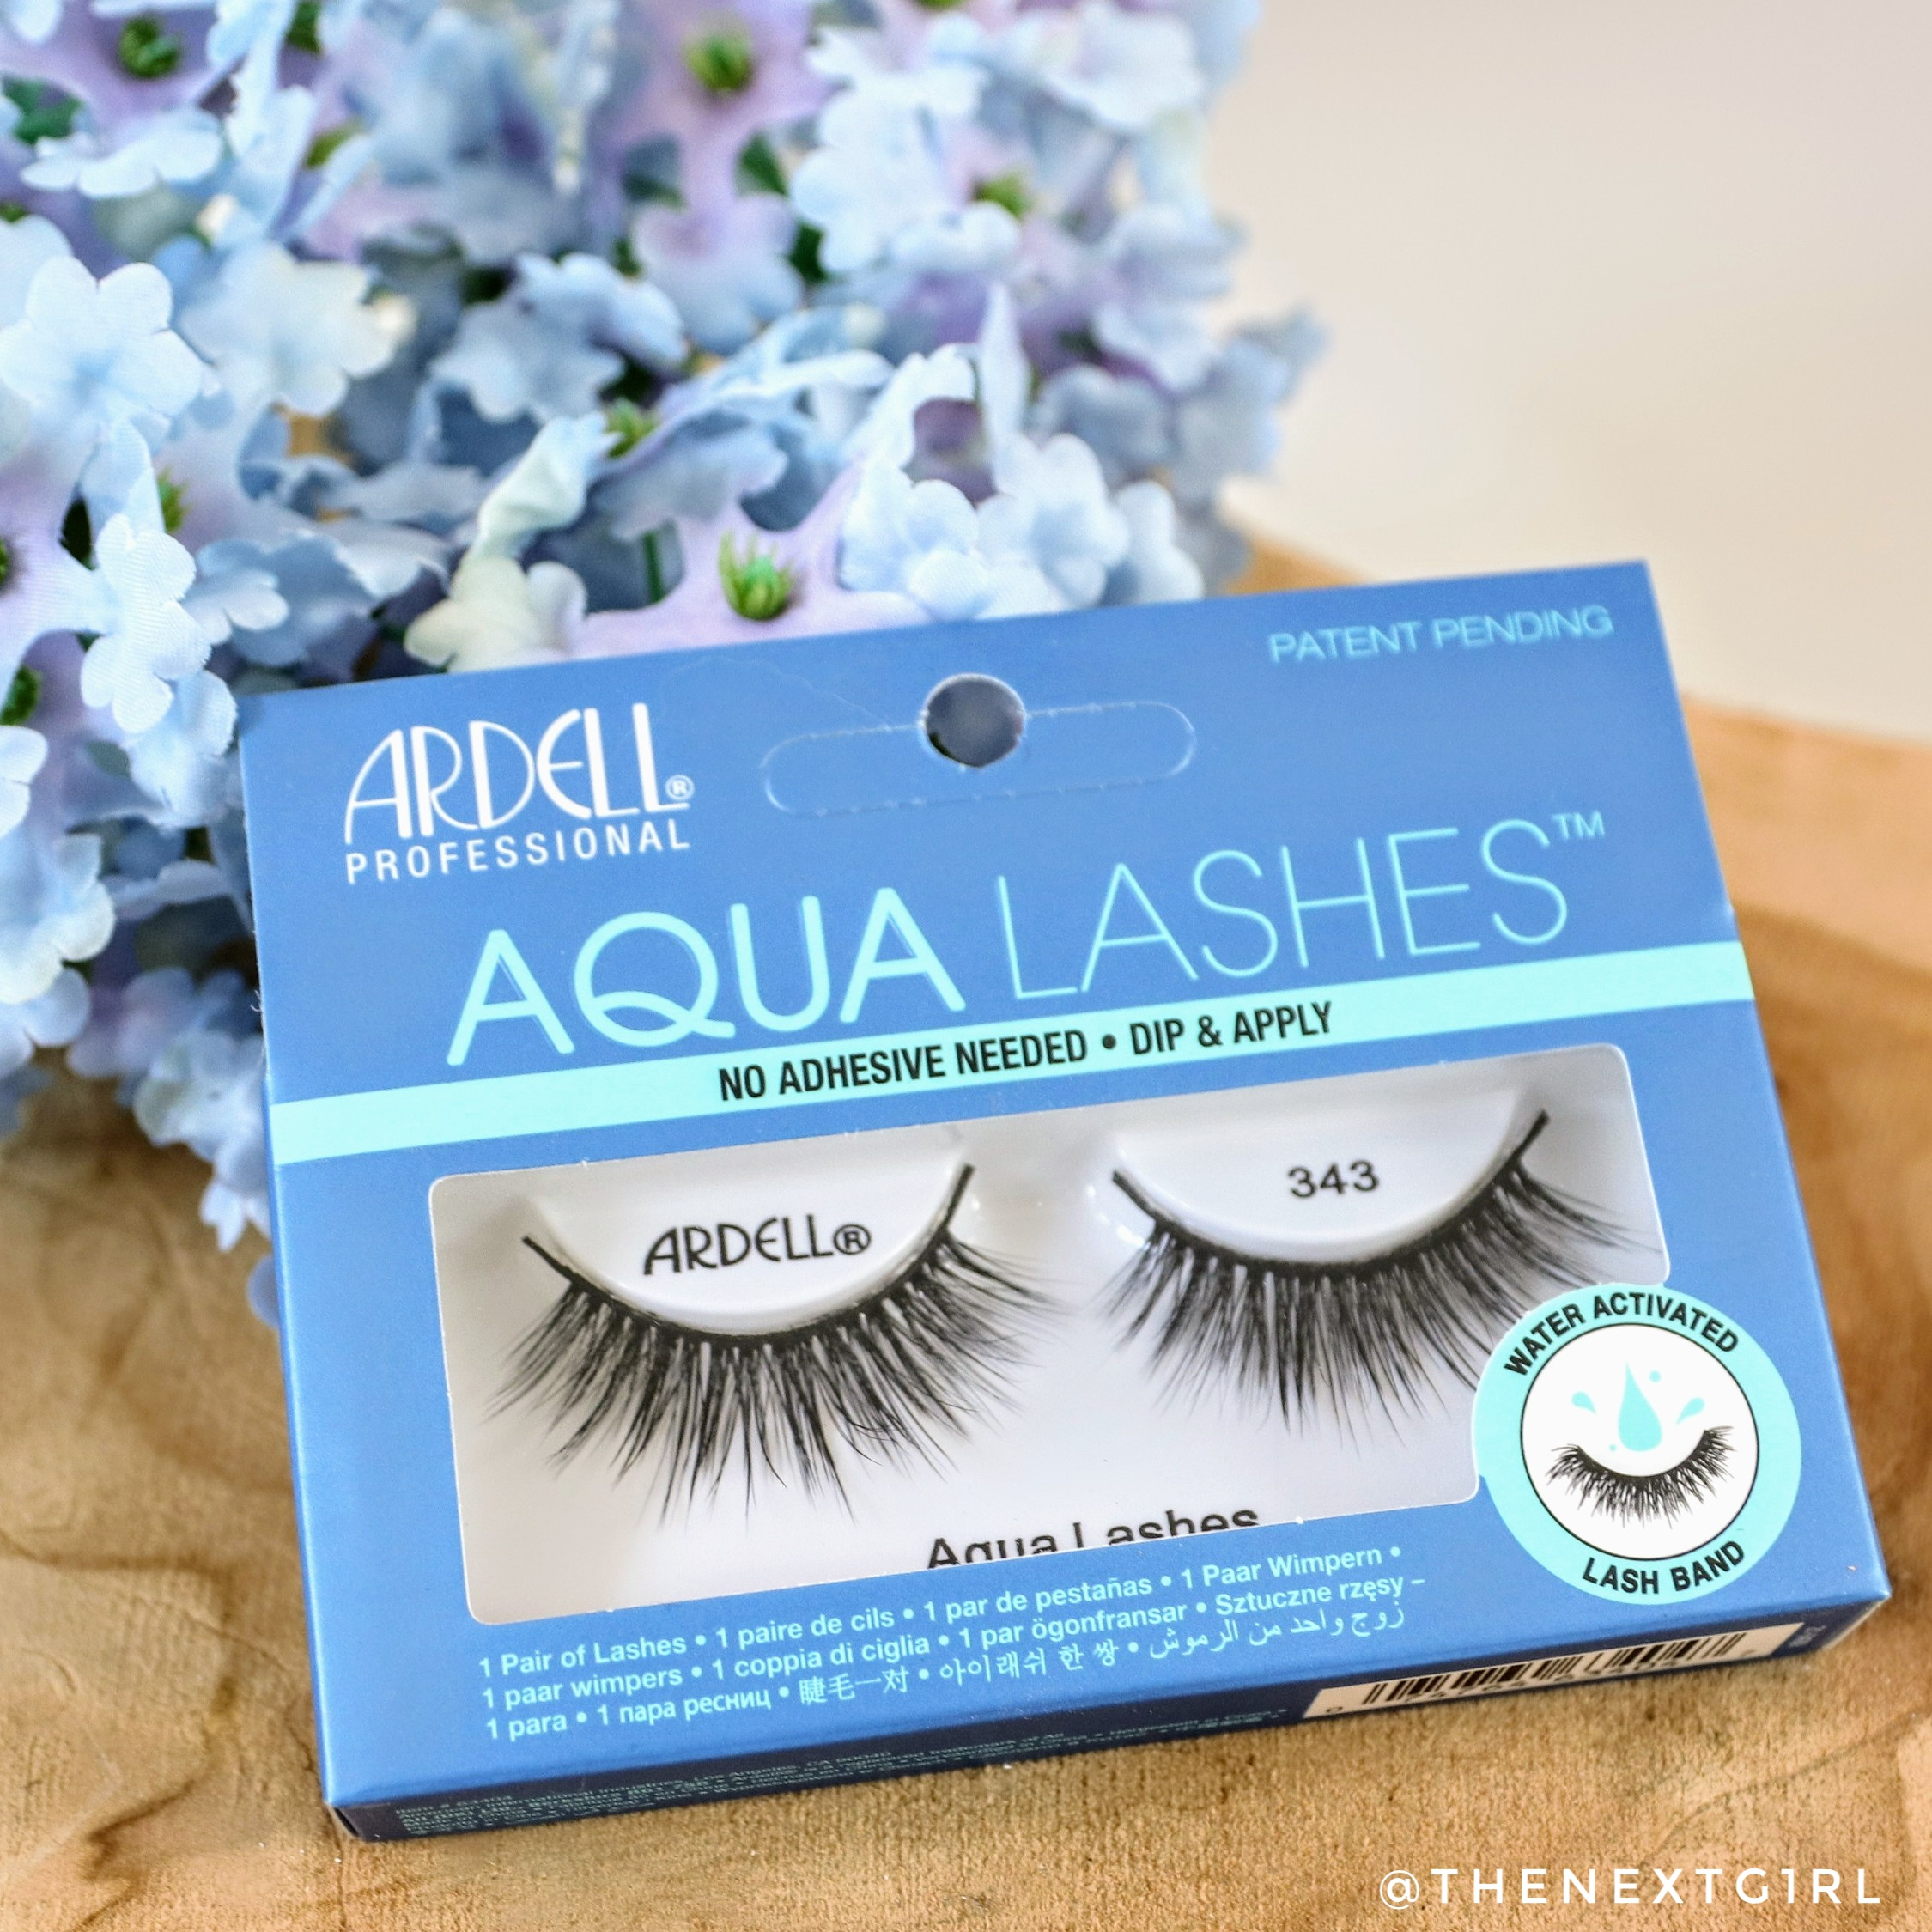 Review: Ardell Aqua lashes